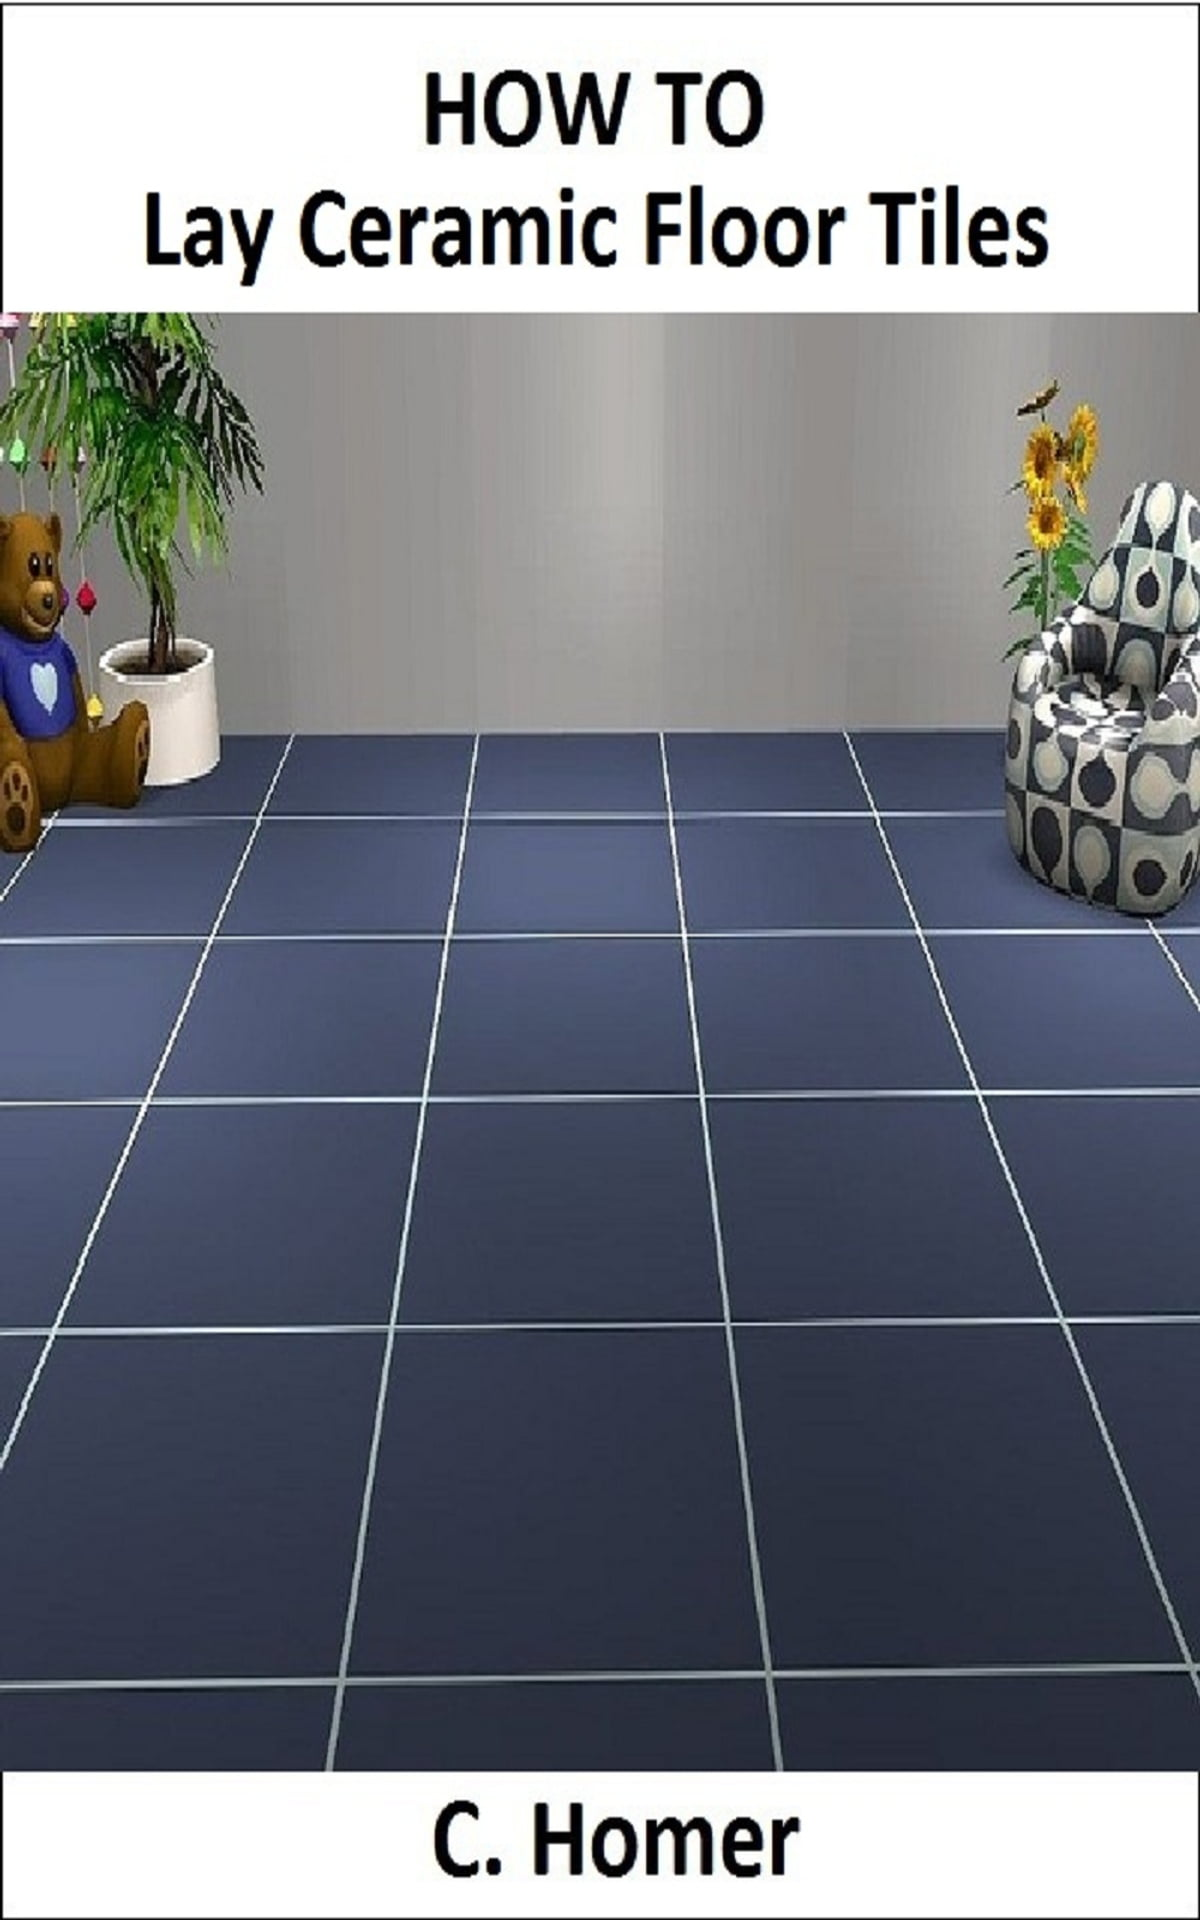 How to lay ceramic floor tiles eBook by C. Homer - 1230000185903 ...